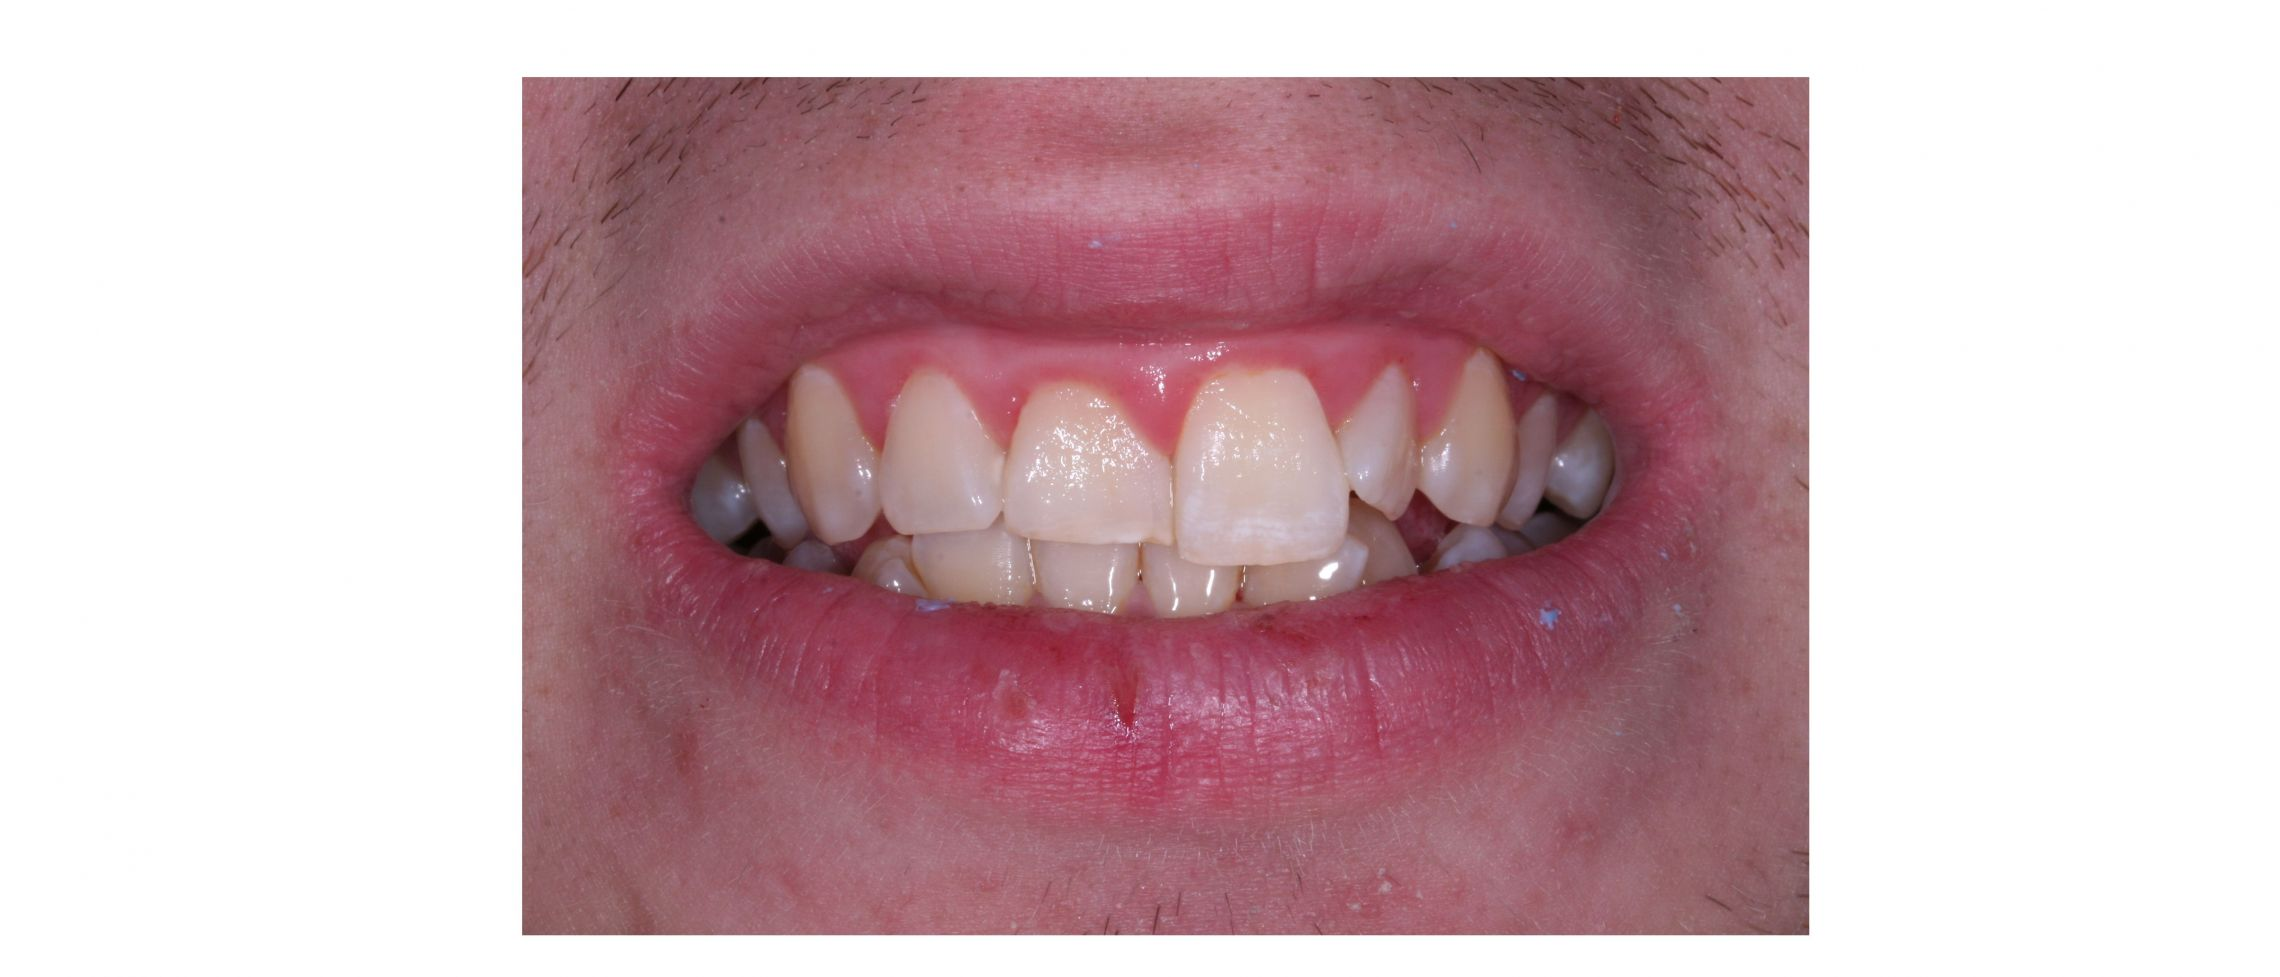 case2 - before treatment